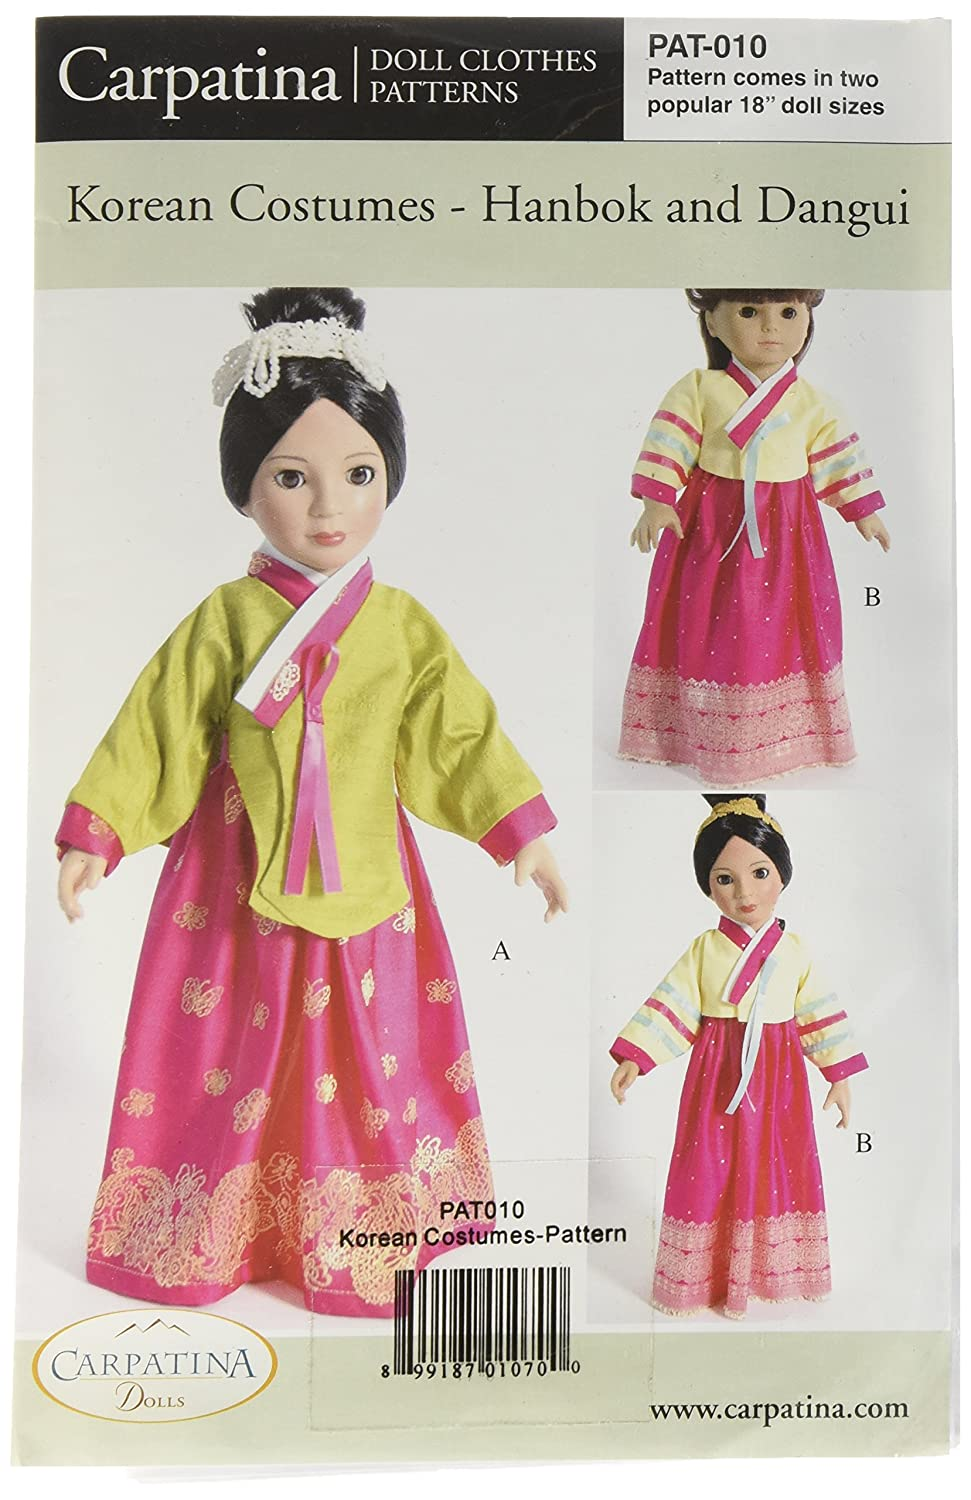 Pattern For Korean Costumes Hanbok Dangui Fits 18 Outfit Girl 10 Korea American Dolls Toys Games